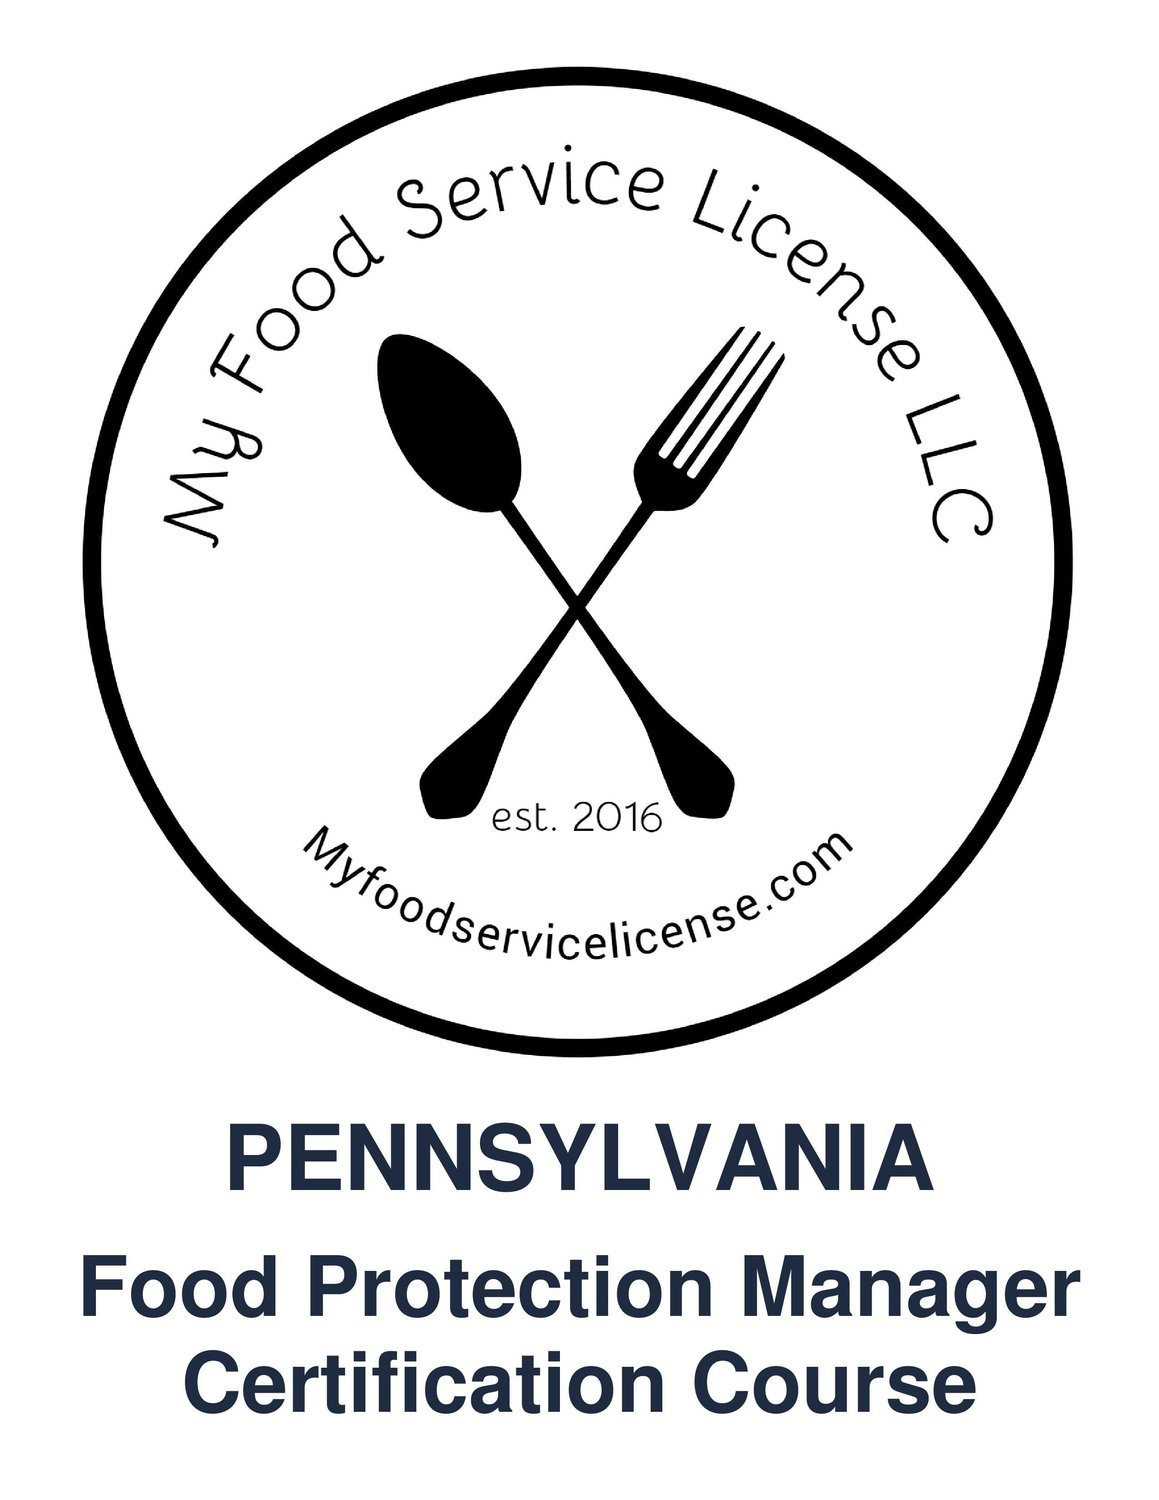 Pennsylvania Online Food Protection Manager Certification Course